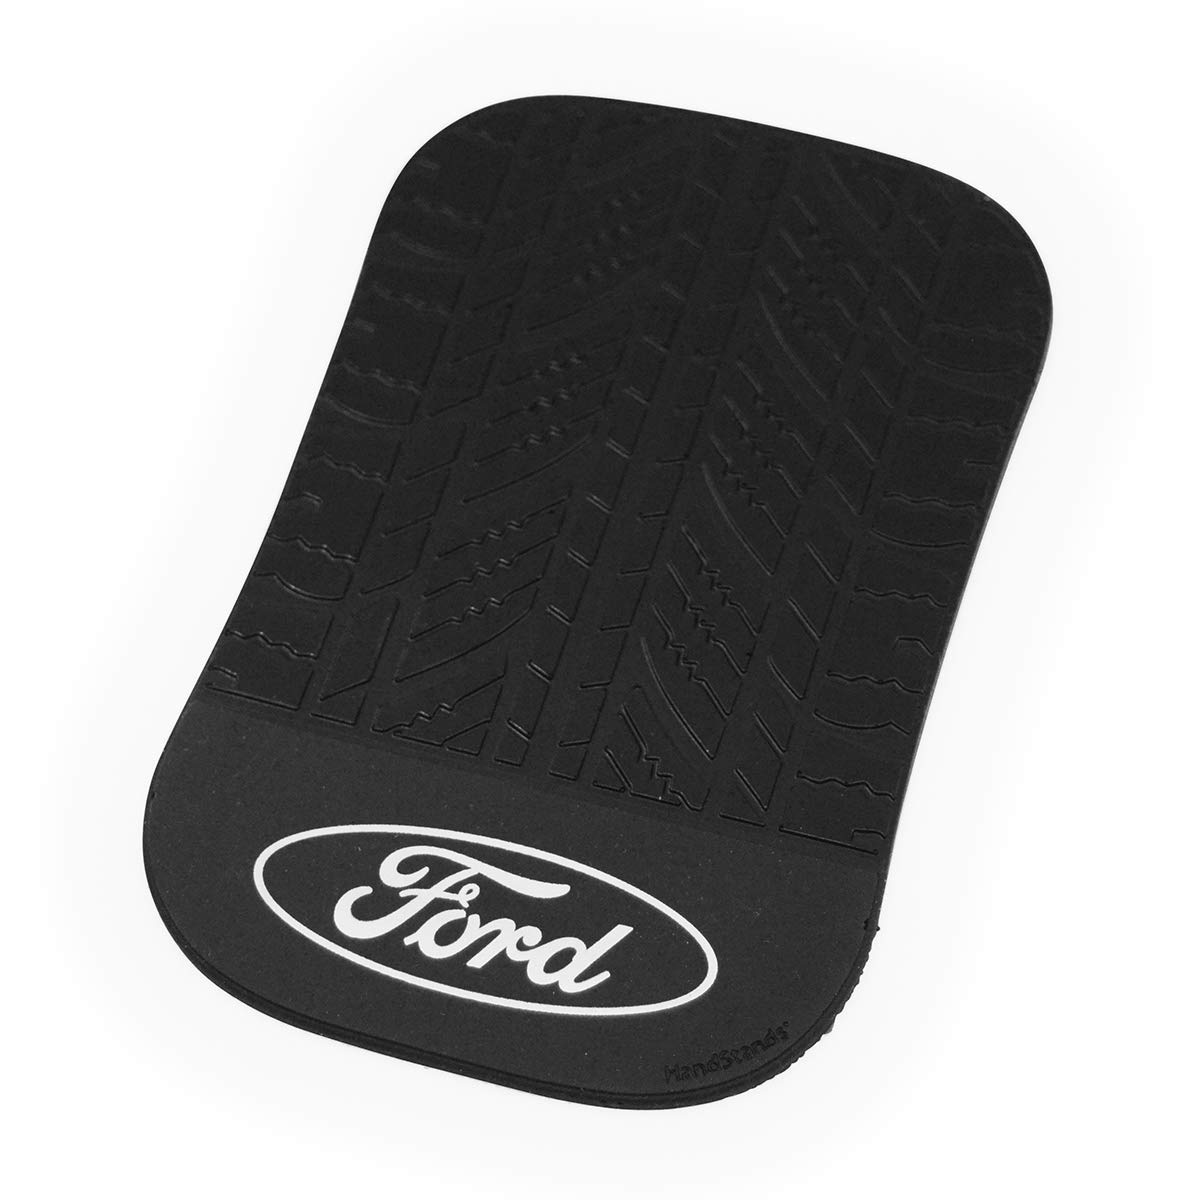 Ford Black Non Slip Pad for Car Dashboard Skid Proof Holder Temperature Resistant for Navigation Cell Phone Sunglasses Key Chains